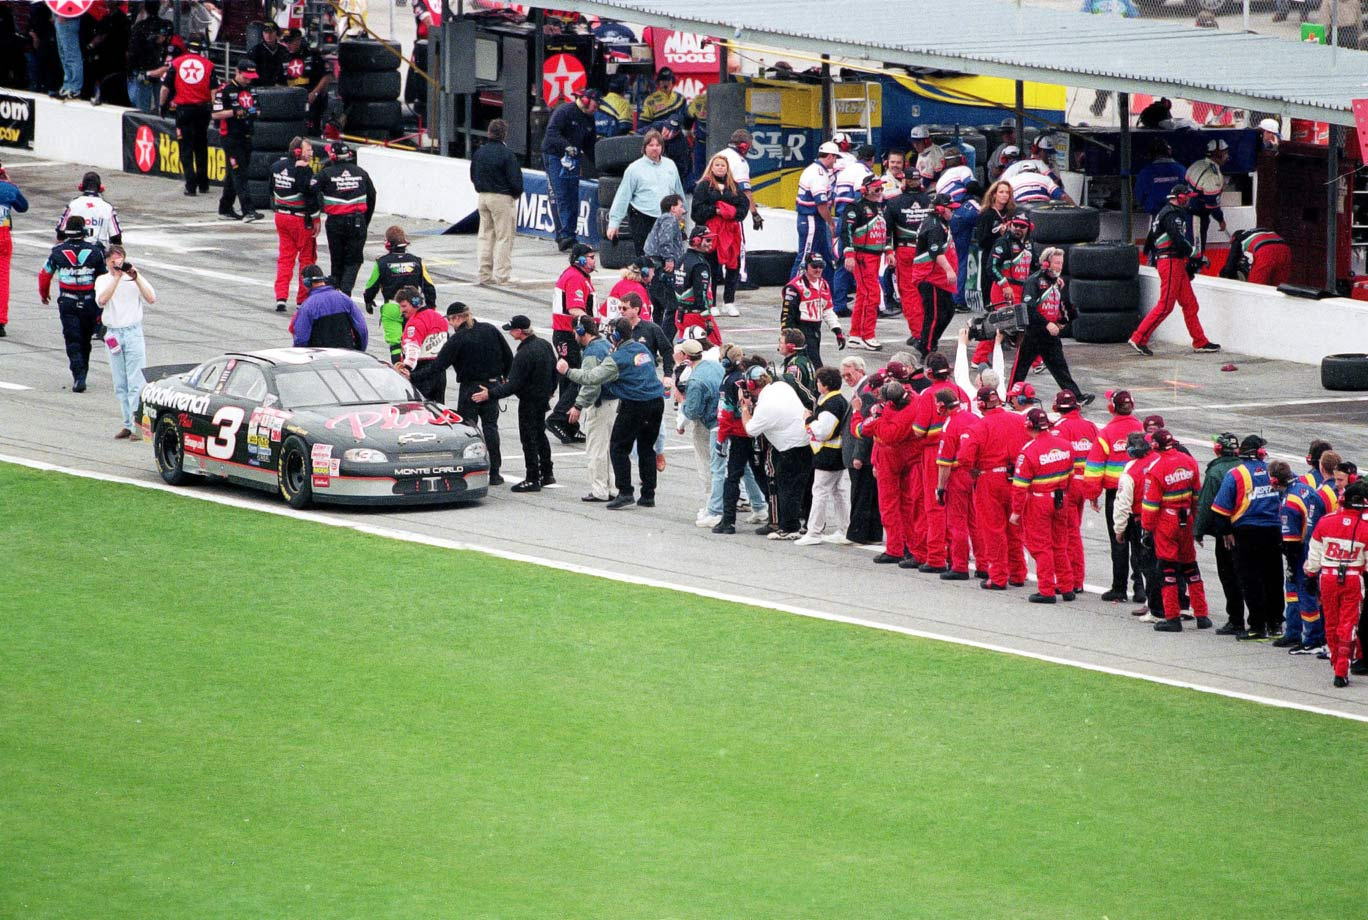 Dale Earnhardt endured two decades of frustrations and tribulations in the Daytona 500, despite dominating nearly every other form of racing at the speedway. When the veteran finally claimed his only Daytona 500 win in 1998, colleagues and competitors lined pit road to congratulate him in a long reception line up pit road.